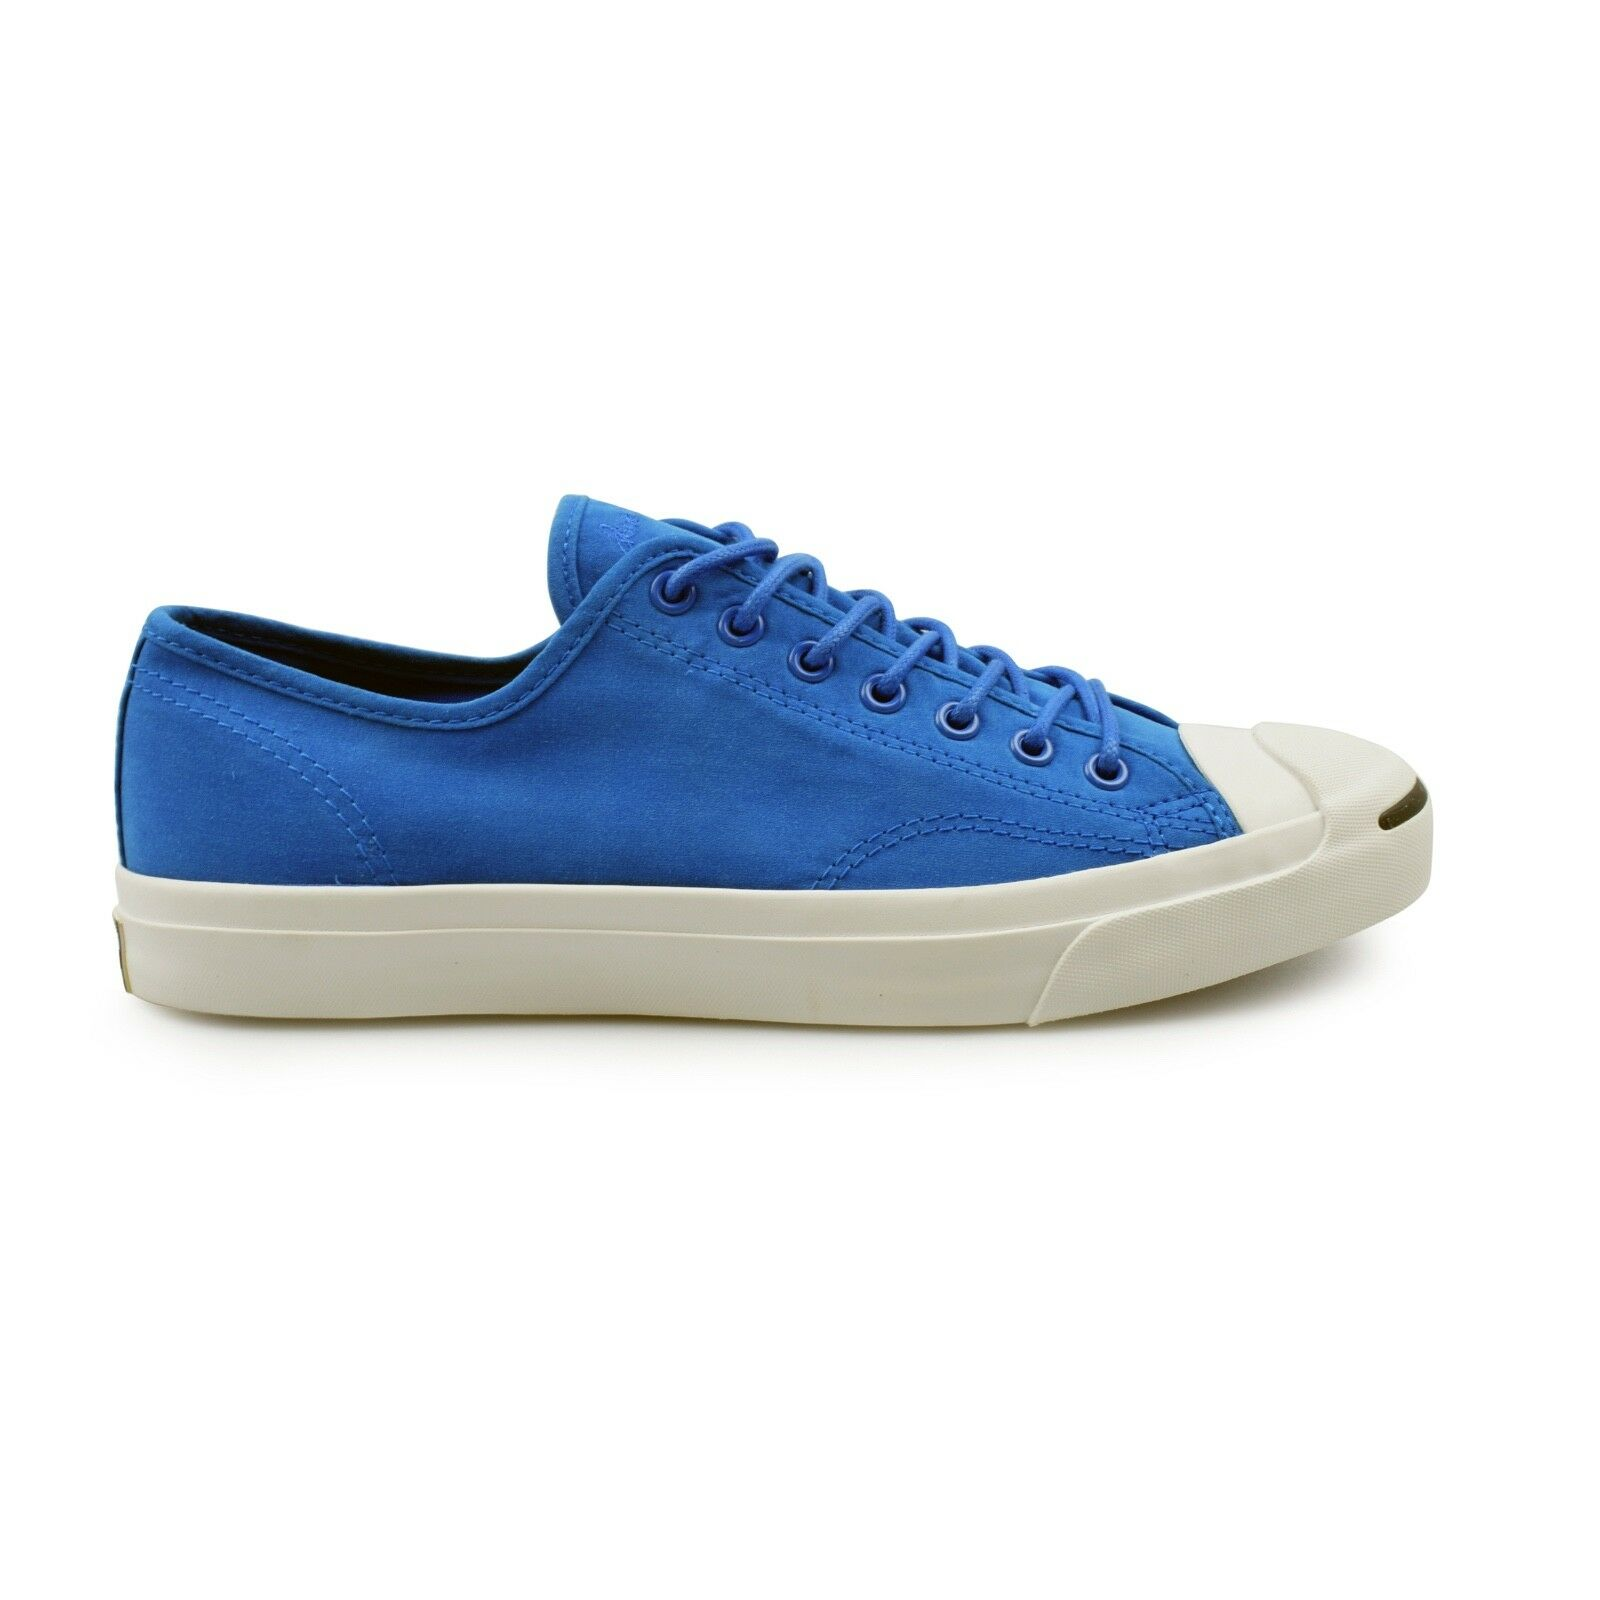 Converse Jack Purcell Peached Textile Ox Vision Blue Mens Trainers New 147573C